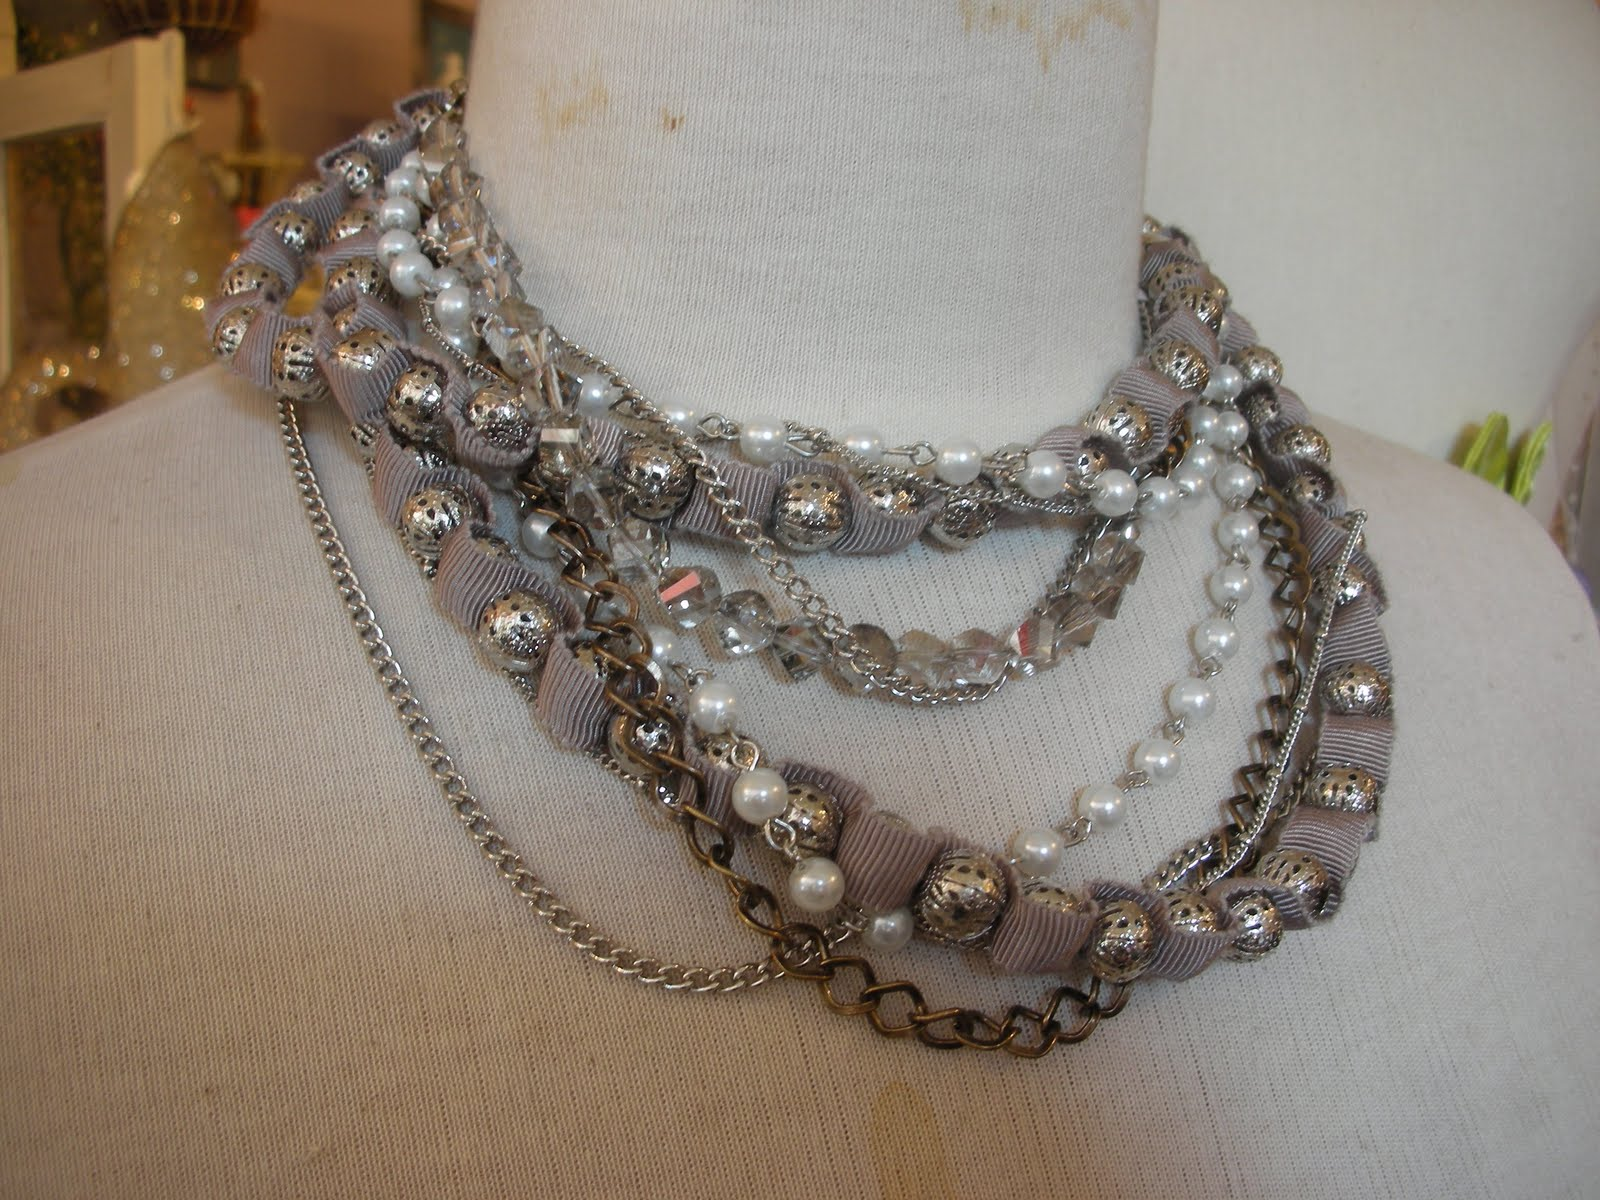 Wedding Bridesmaid Necklaces everything but the dress layered bridesmaid necklaces pair a sophisticated little black with cluster of stones shown above jolie 36 long flower necklace 29 alex agudo crystal ne